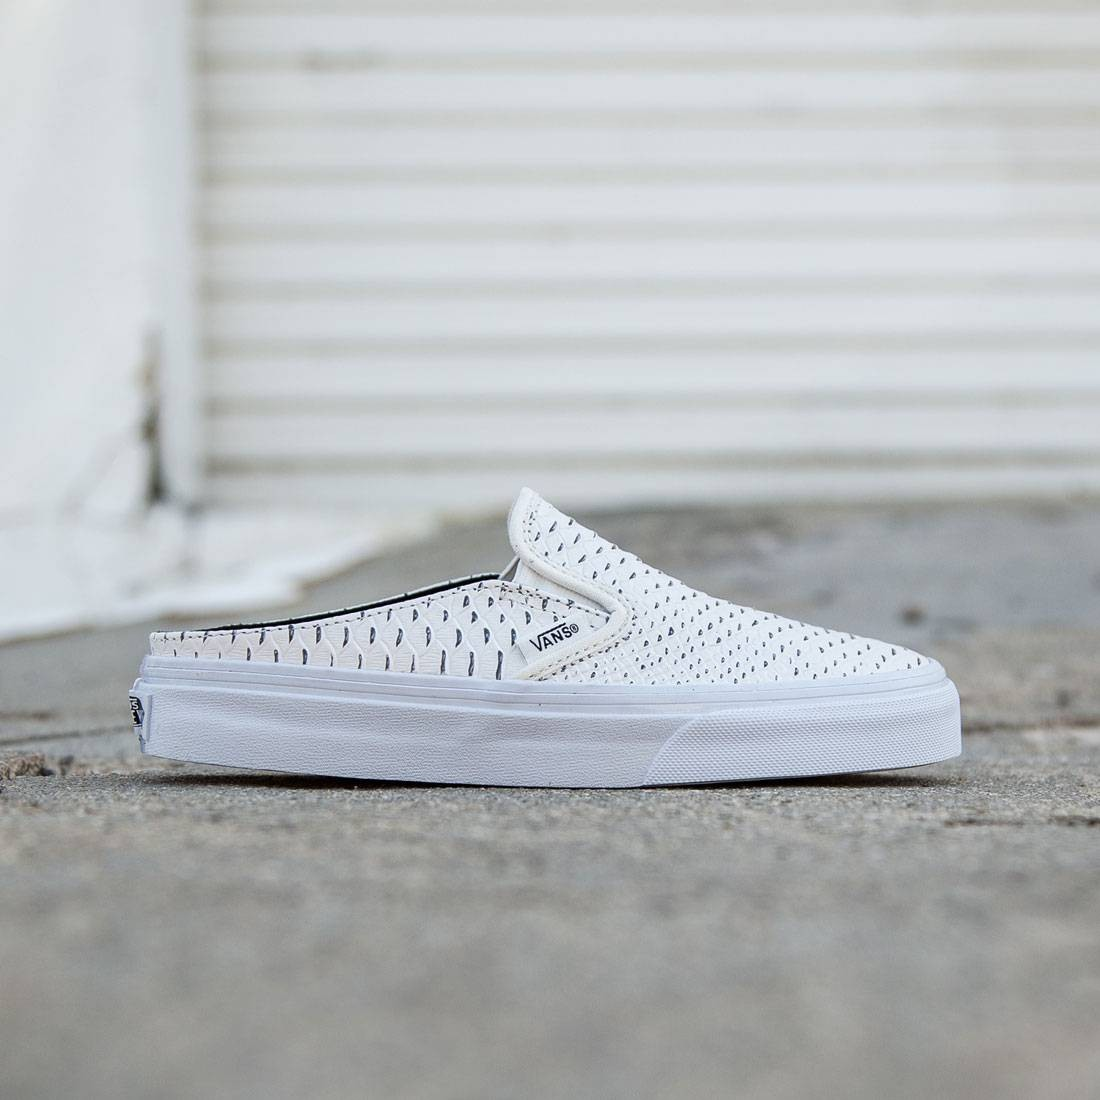 c9d819da60 Vans Women Classic Slip-On Mule - Embossed Leather white true white